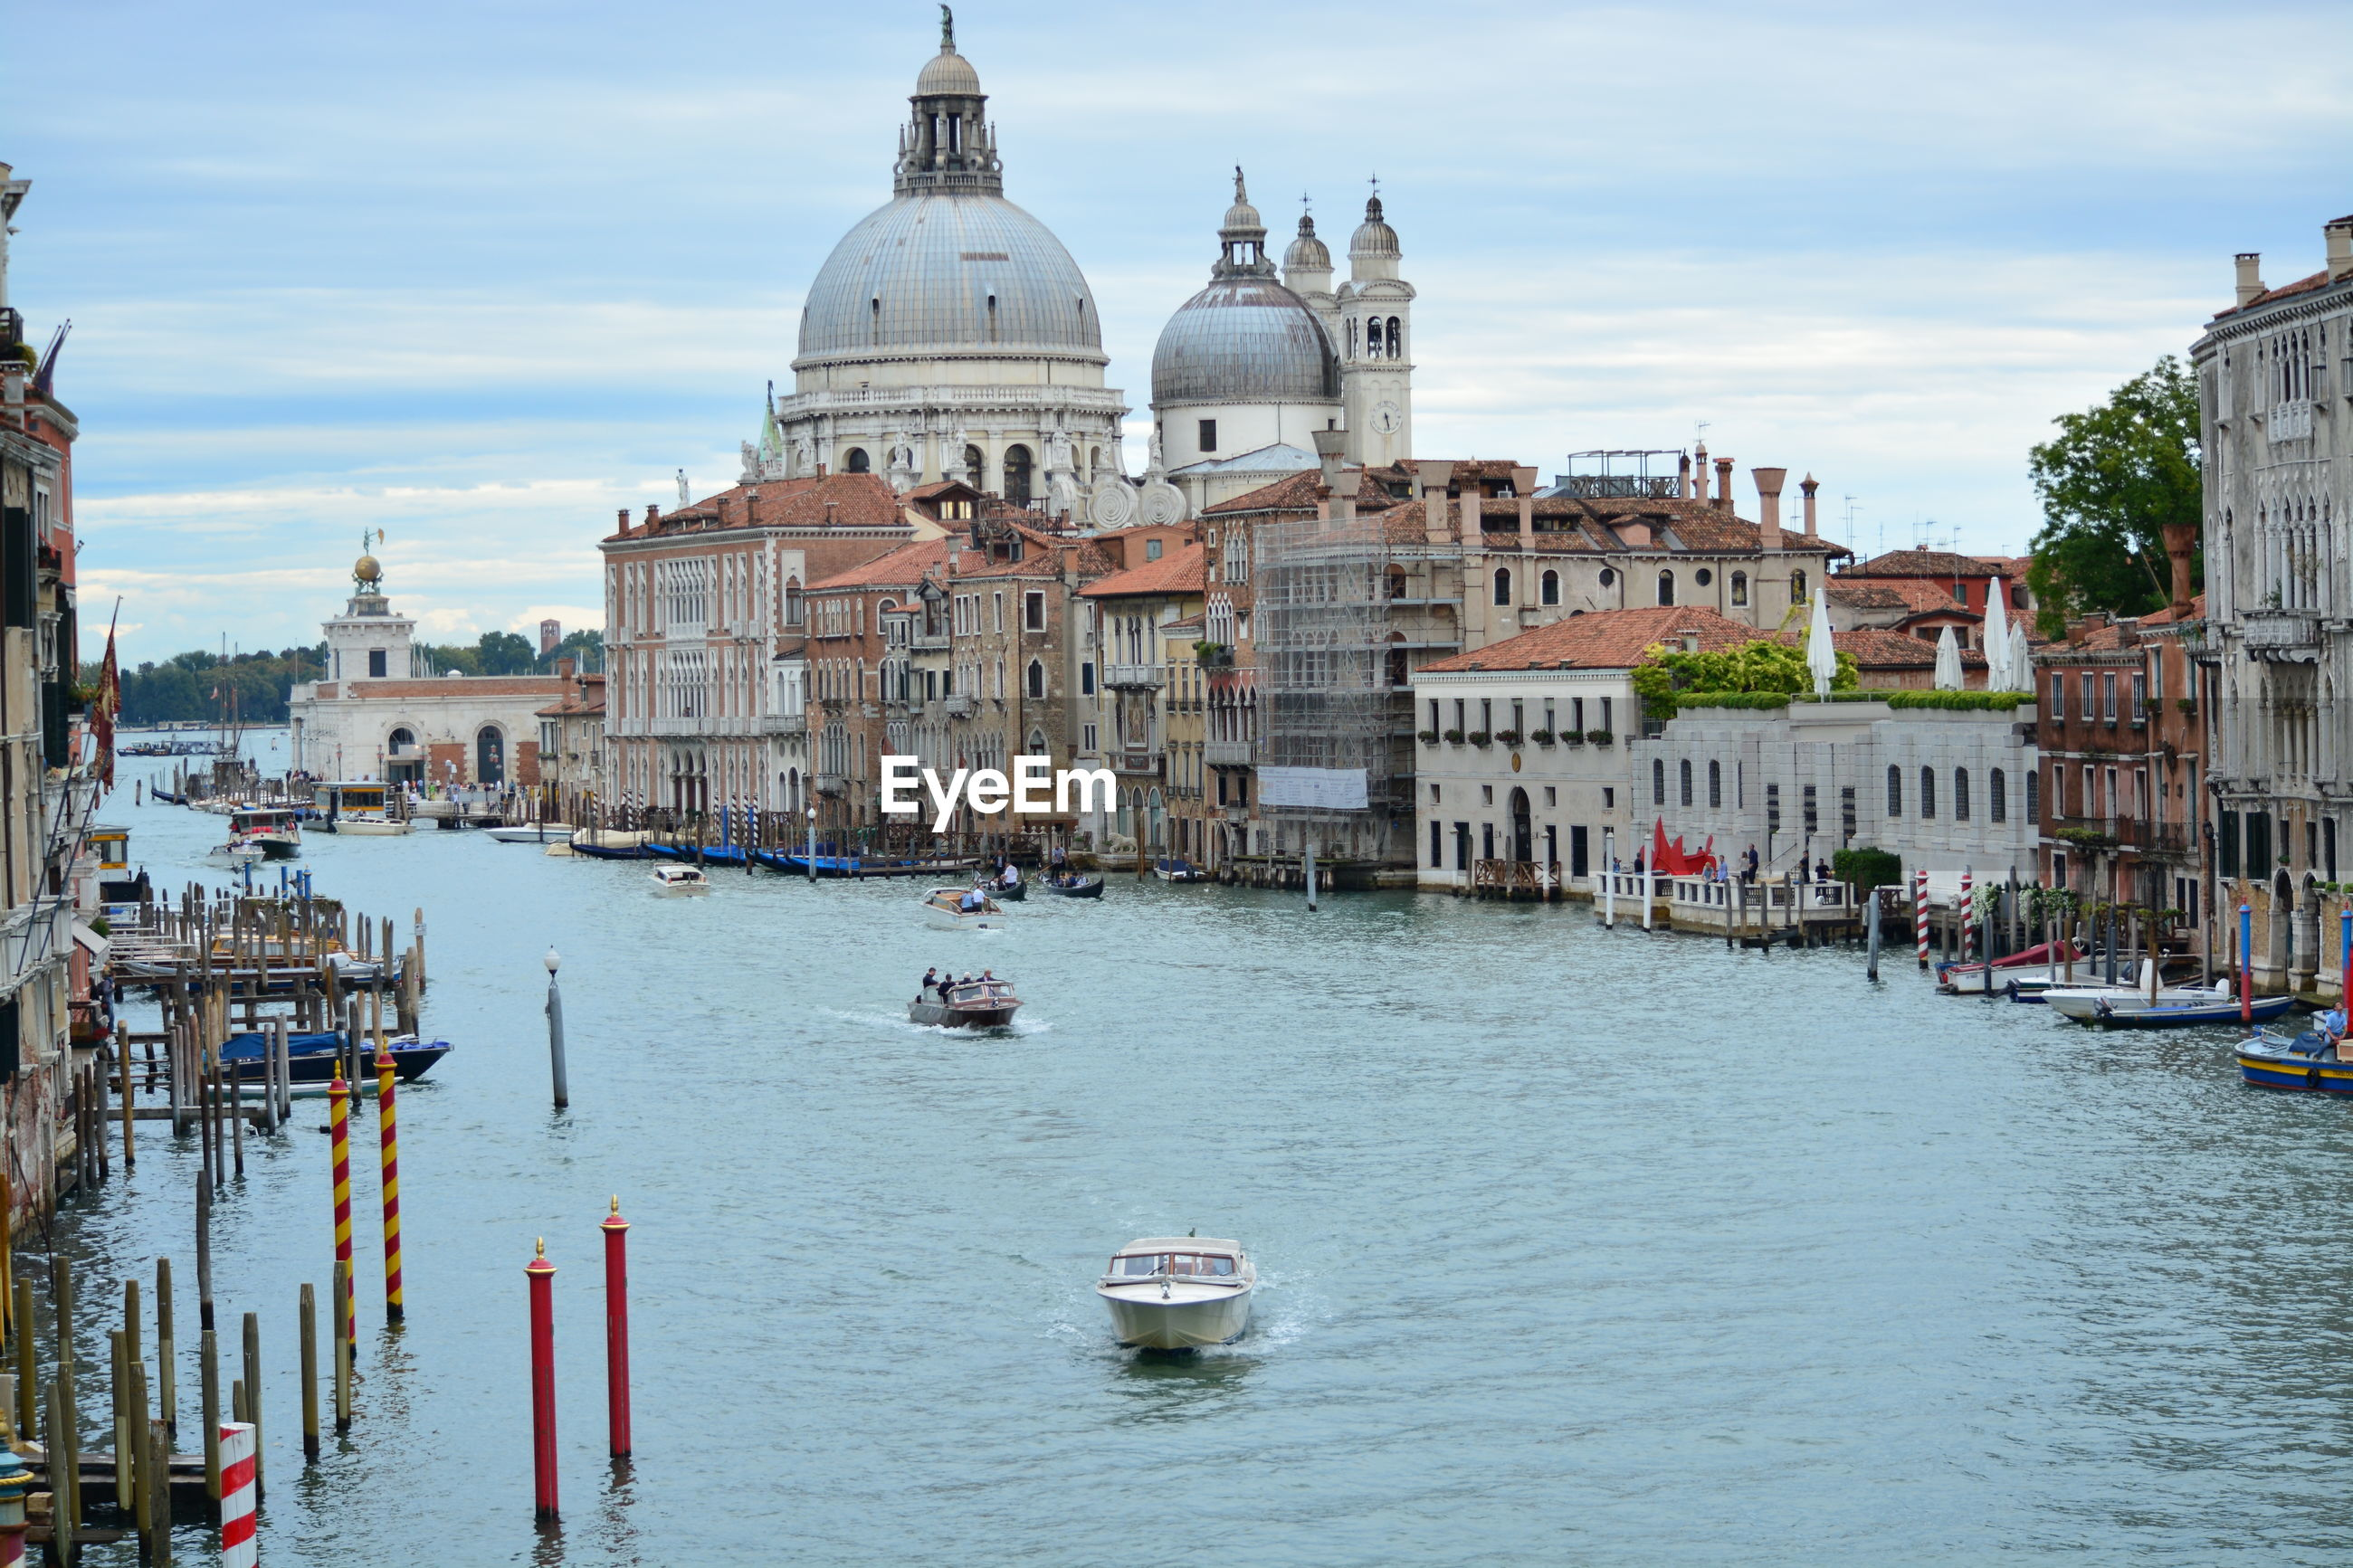 Boats in grand canal with historic santa maria della salute against sky